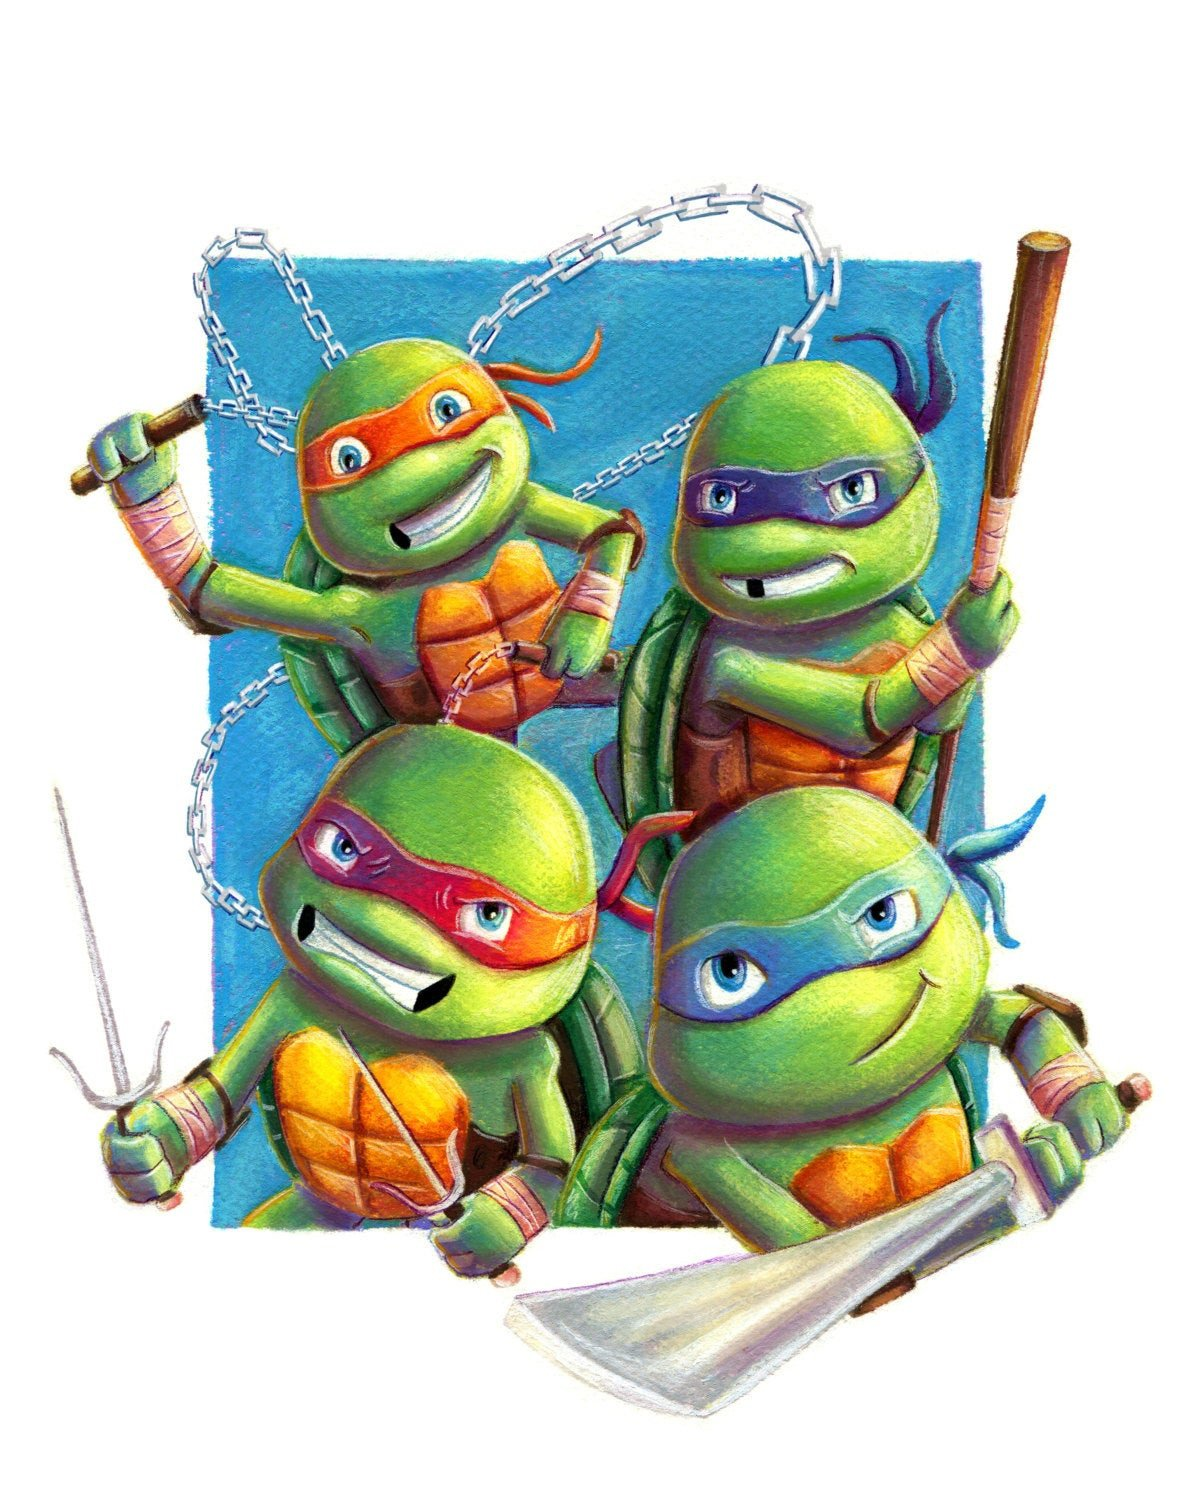 Teenage Mutant Ninja Turtles Bedroom Beautiful Teenage Mutant Ninja Turtles Bedroom Curtains